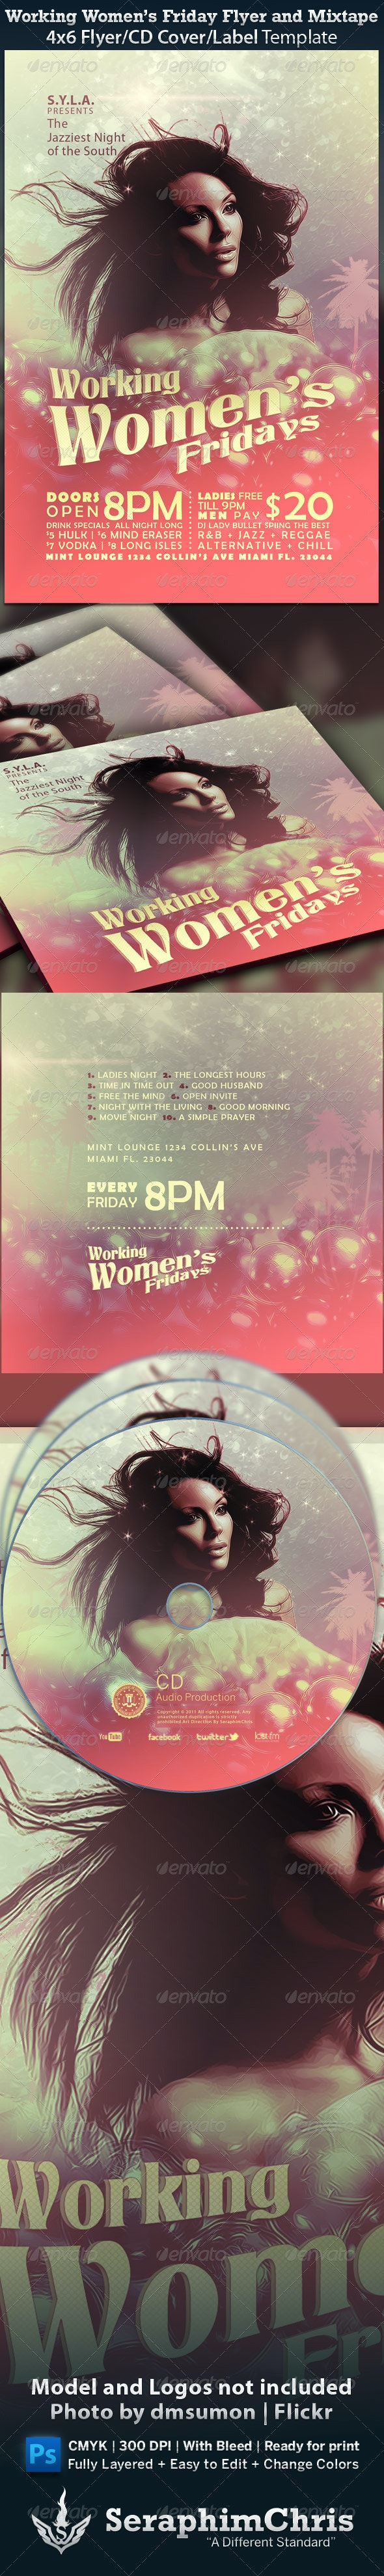 Working Women's Fridays Flyer and Mixtape - Clubs & Parties Events